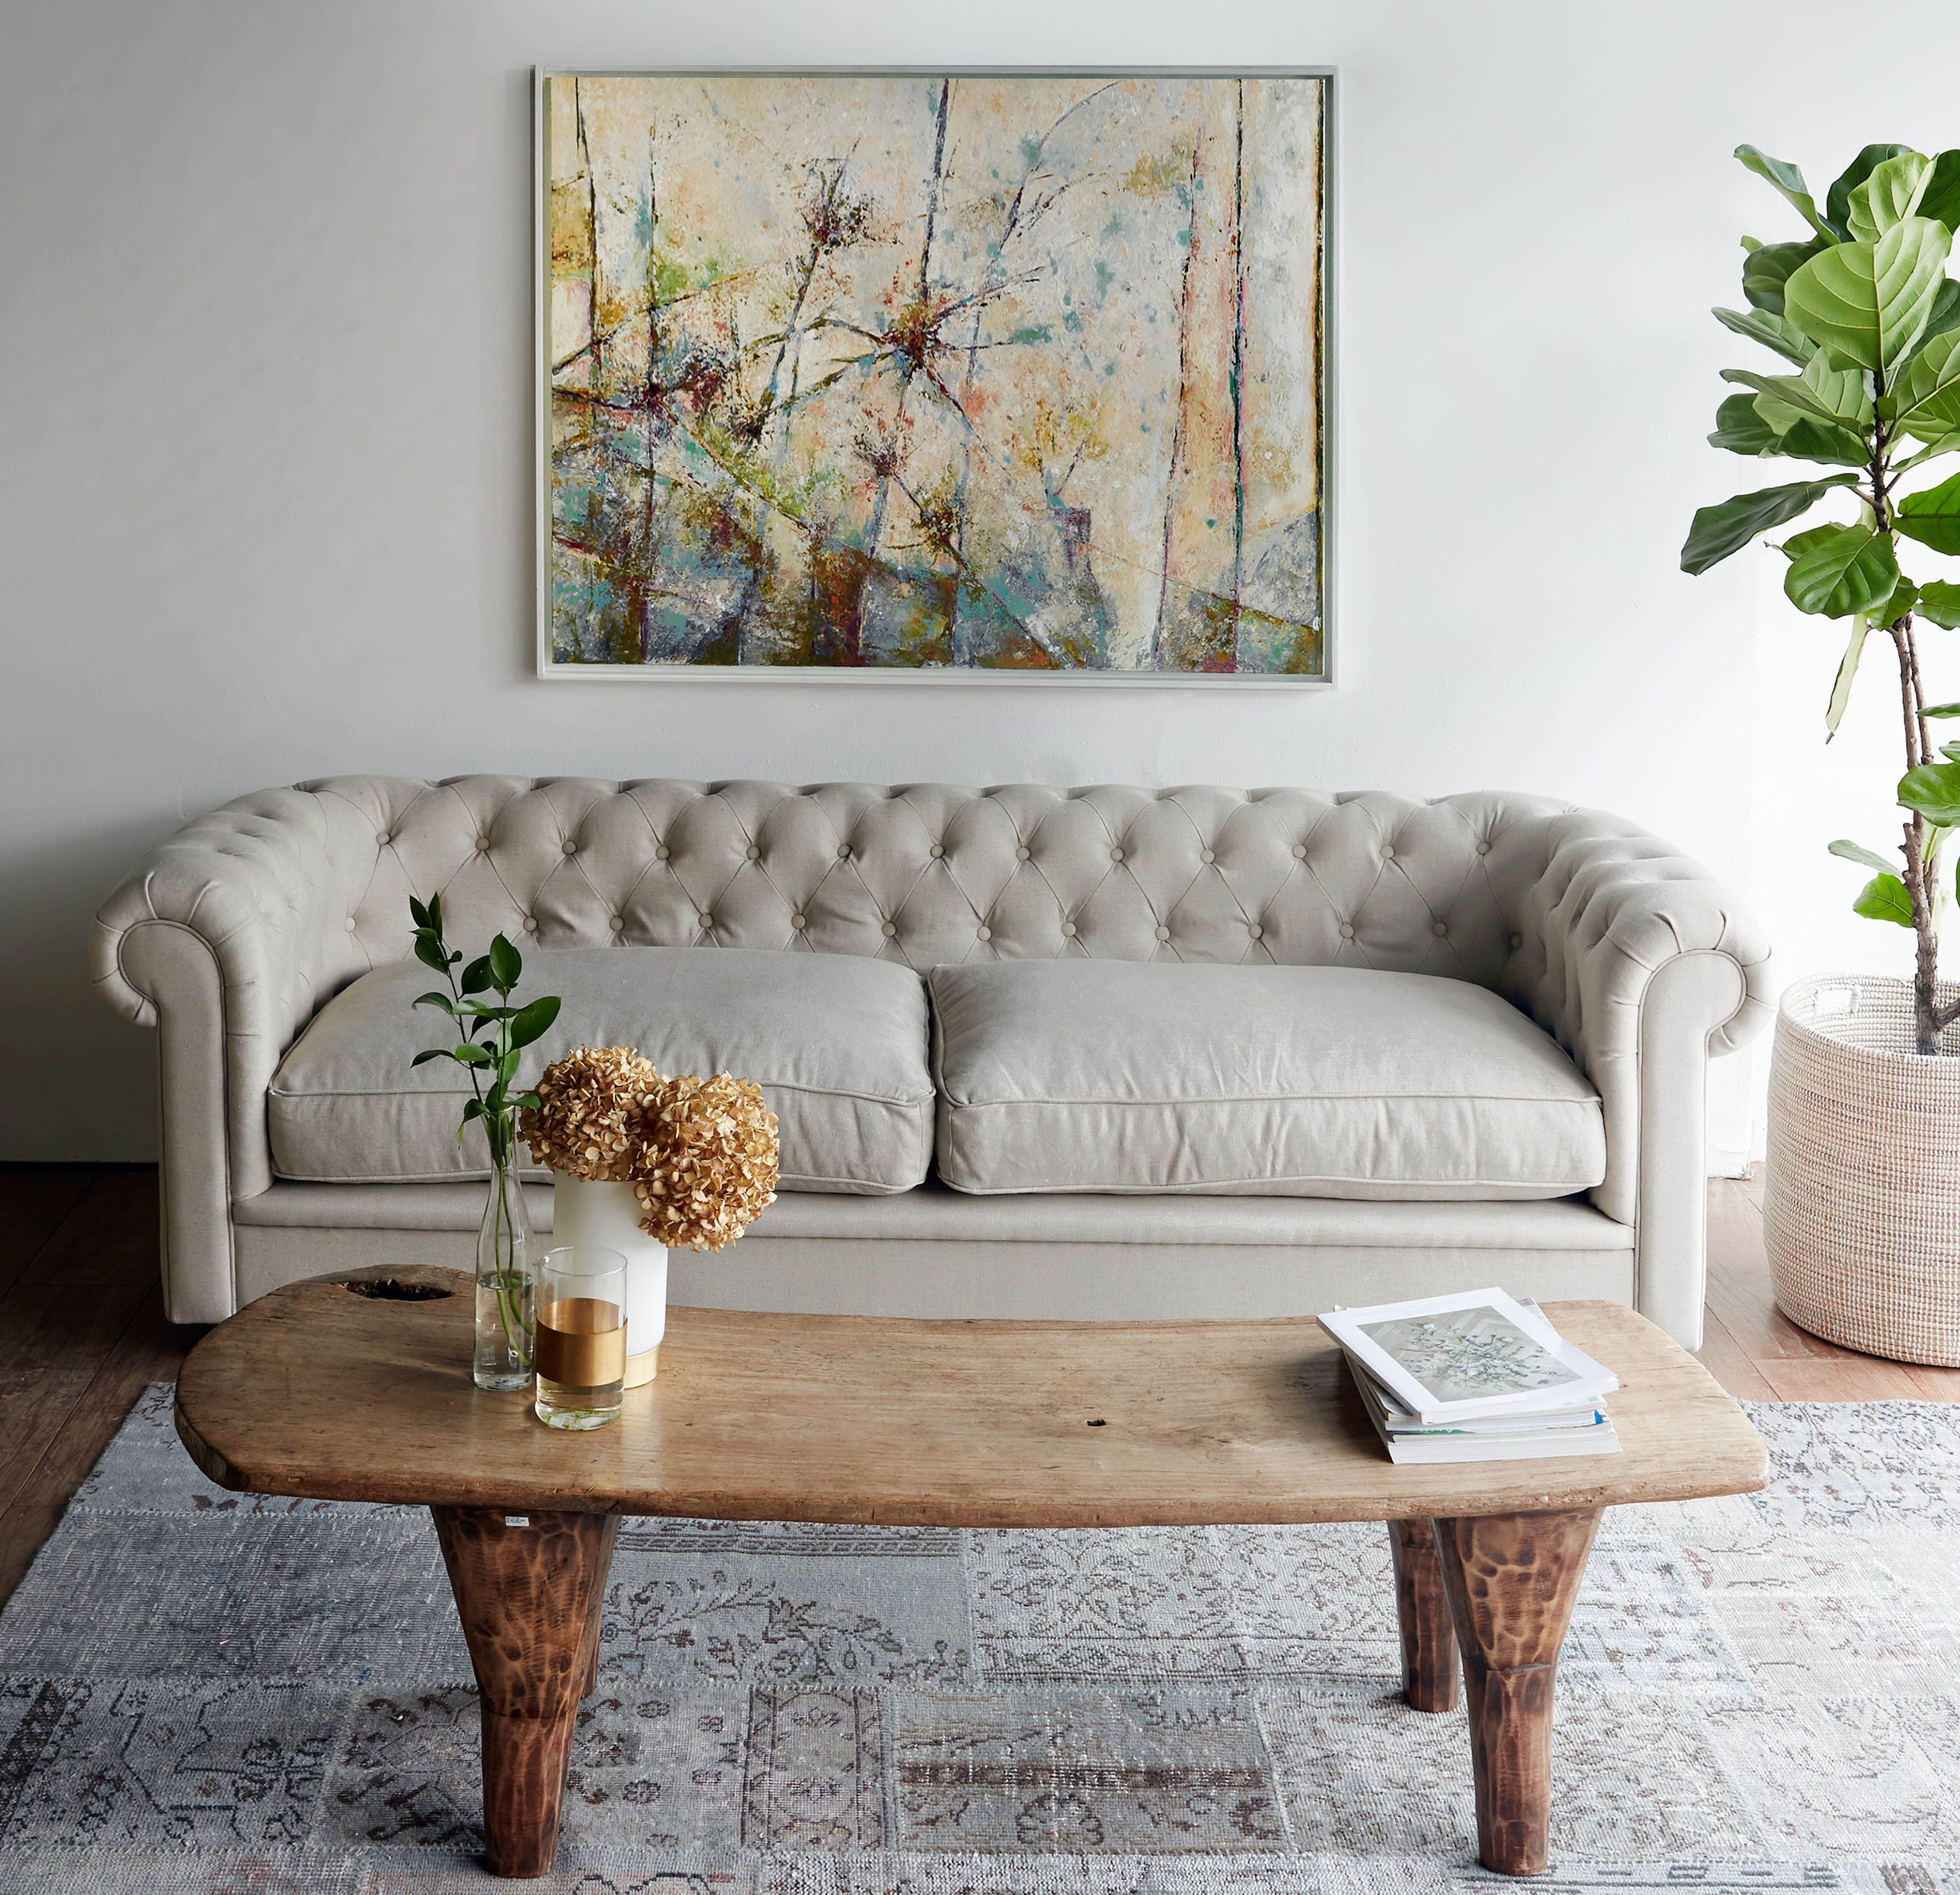 Nomad Home Arnold 3 Seater Chesterfield Sofa Natural $2800